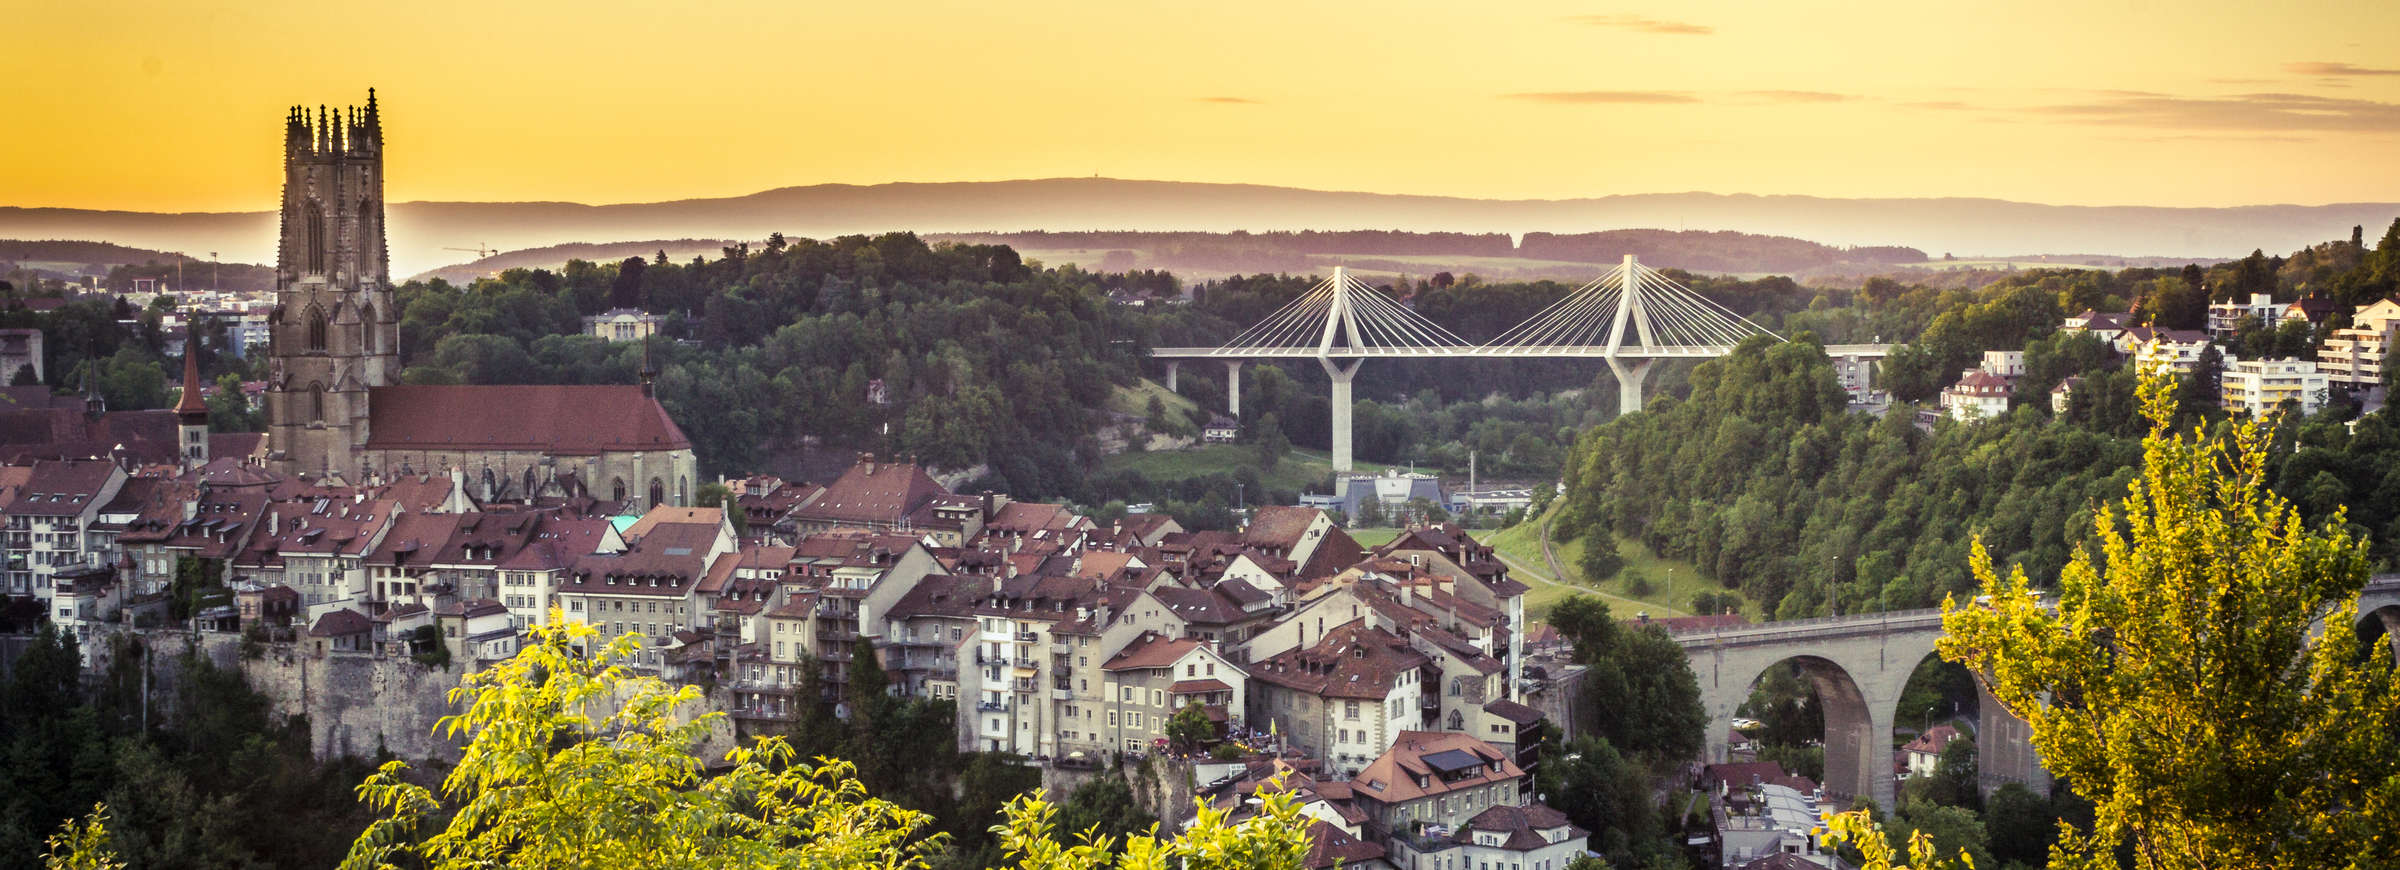 Fribourg ville © Pierre Cuony